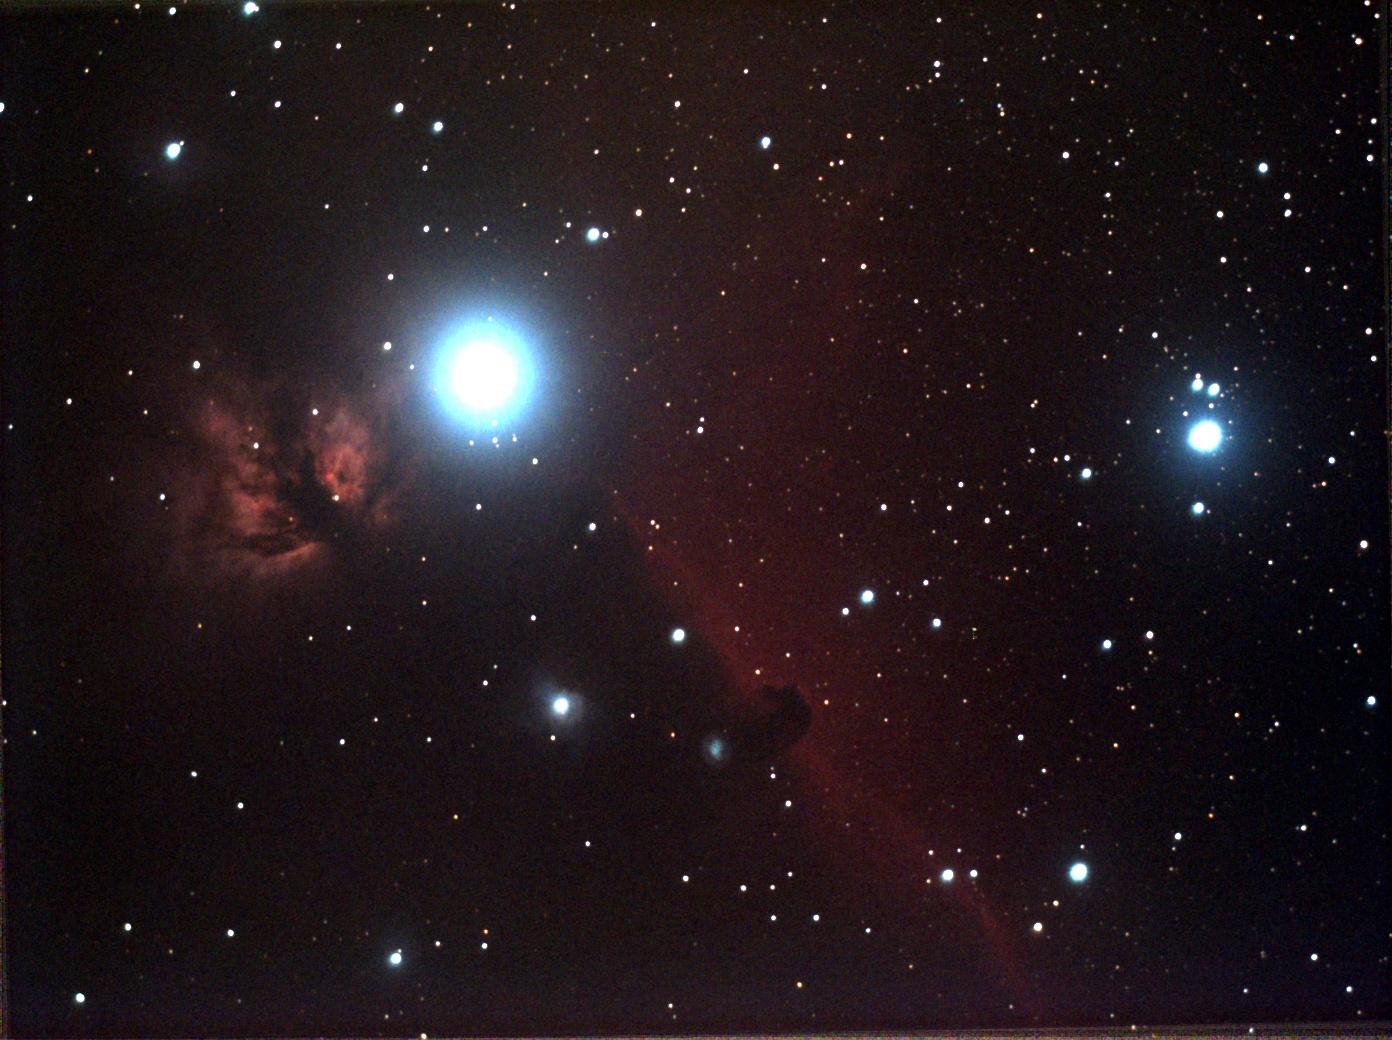 horsehead 12x60s f4.5 at72